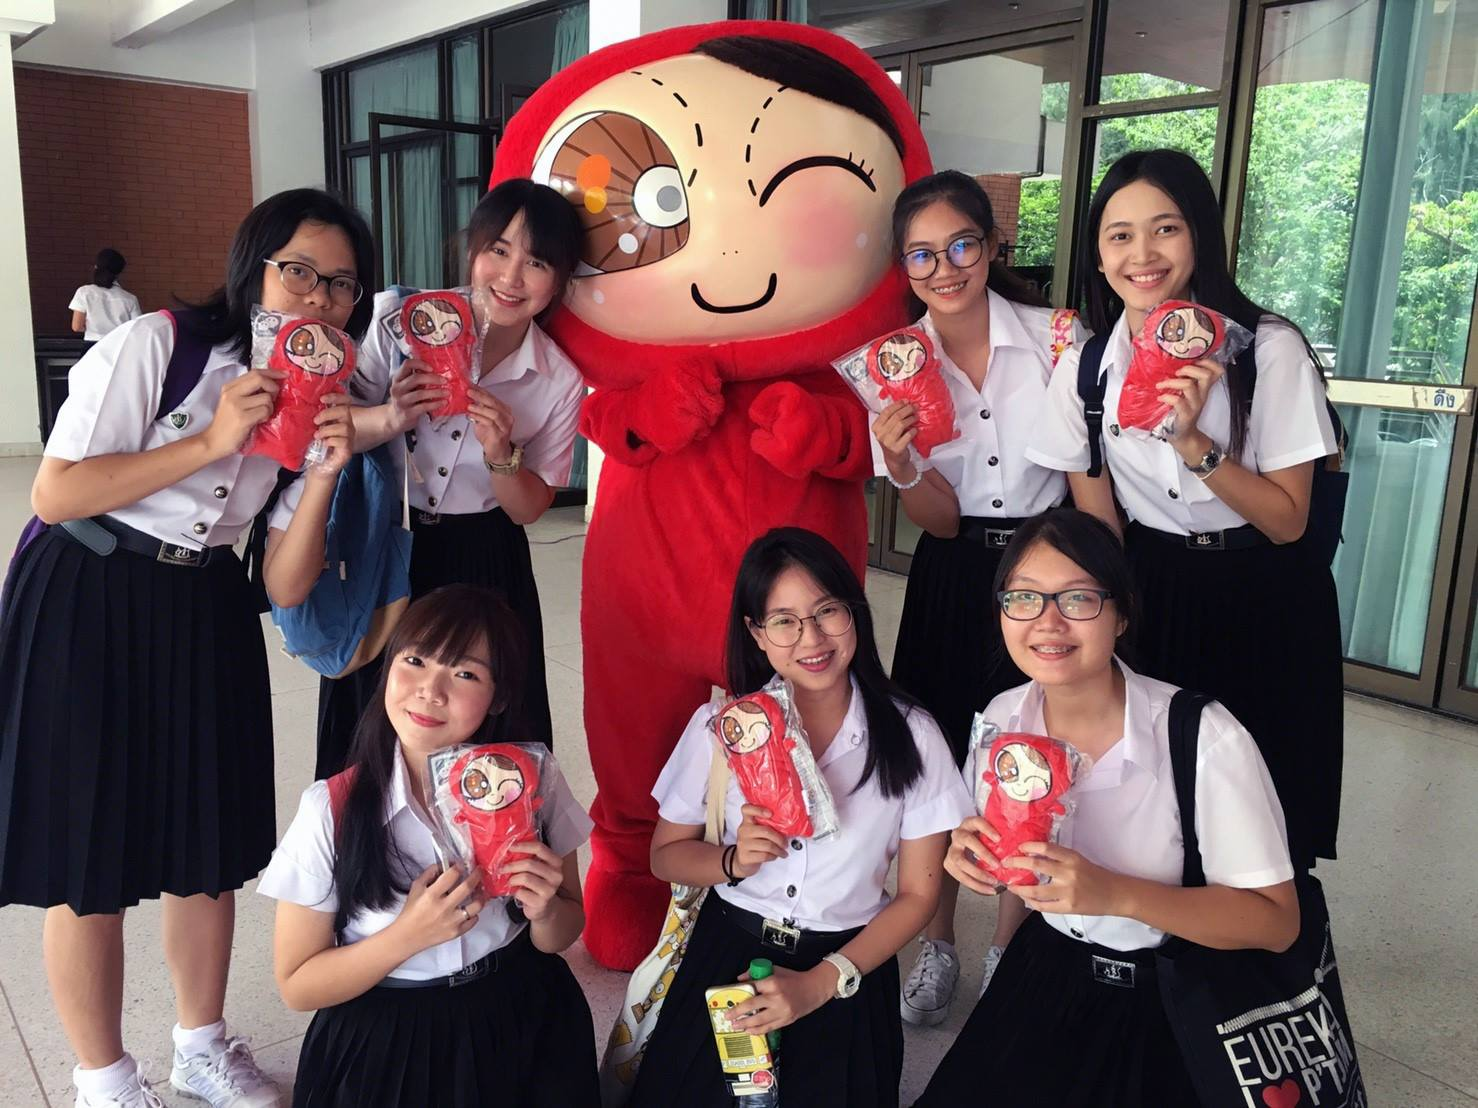 Students from Kasetsat university in Thailand posing with Pocotee & Friends merchandise. Thanks to her collection of Line stickers, Loh has an enormous following in Thailand.